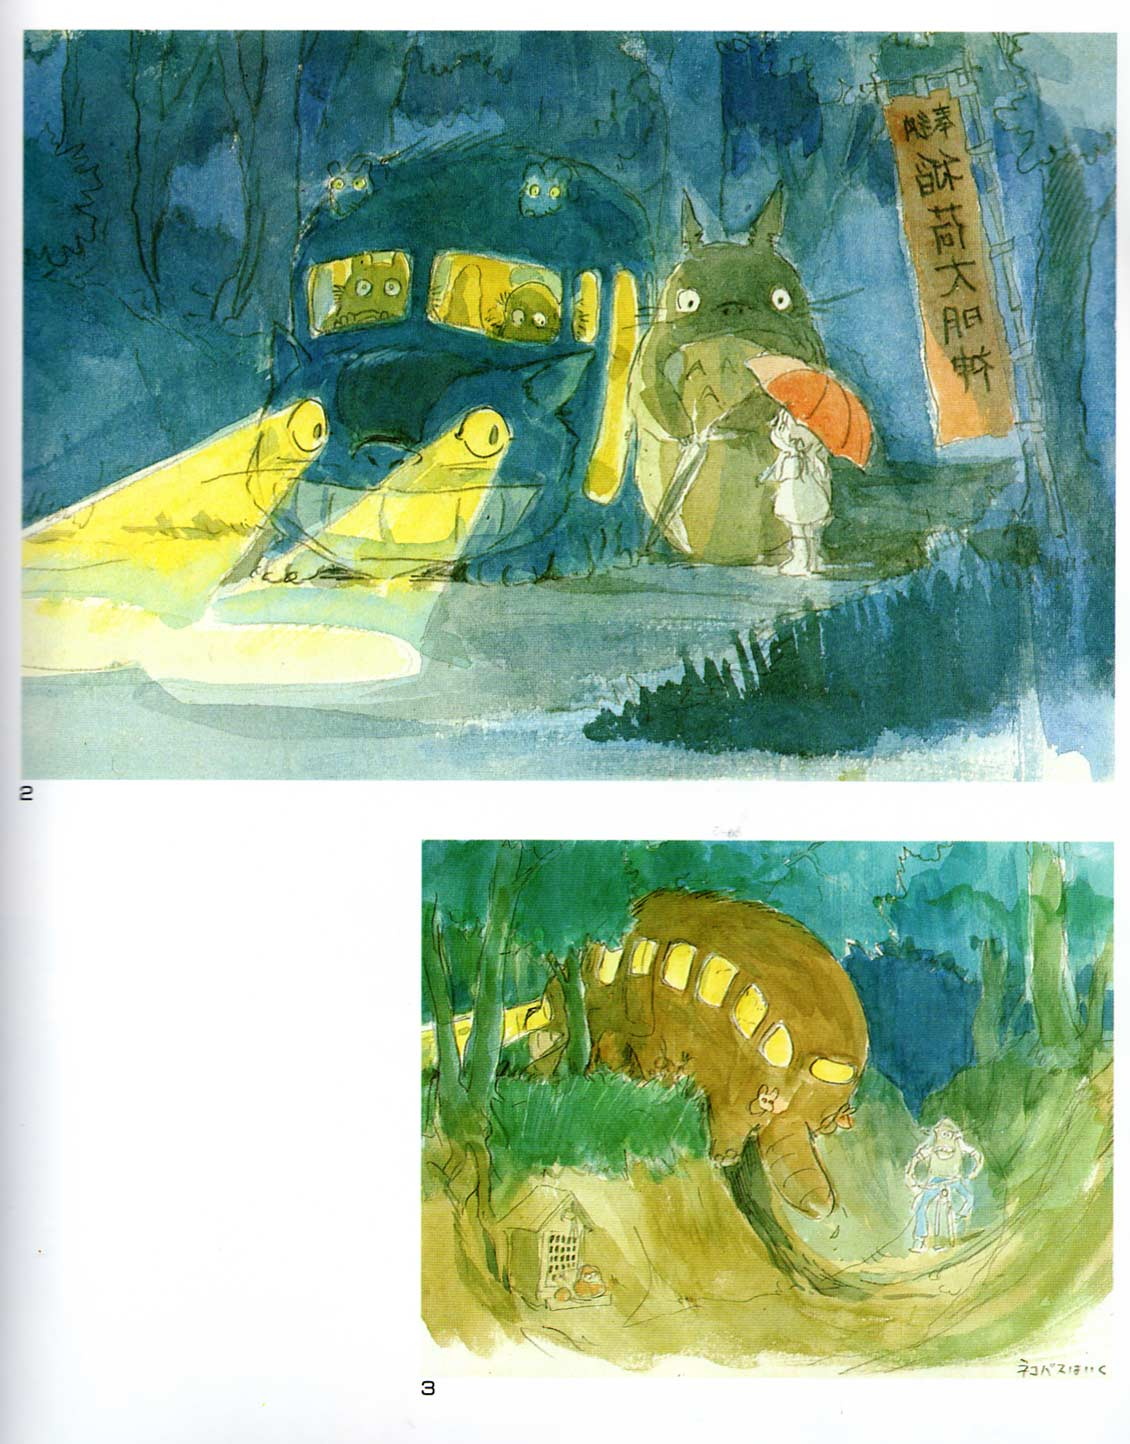 Art Book Totoro : The Art of Tororo (page 22)